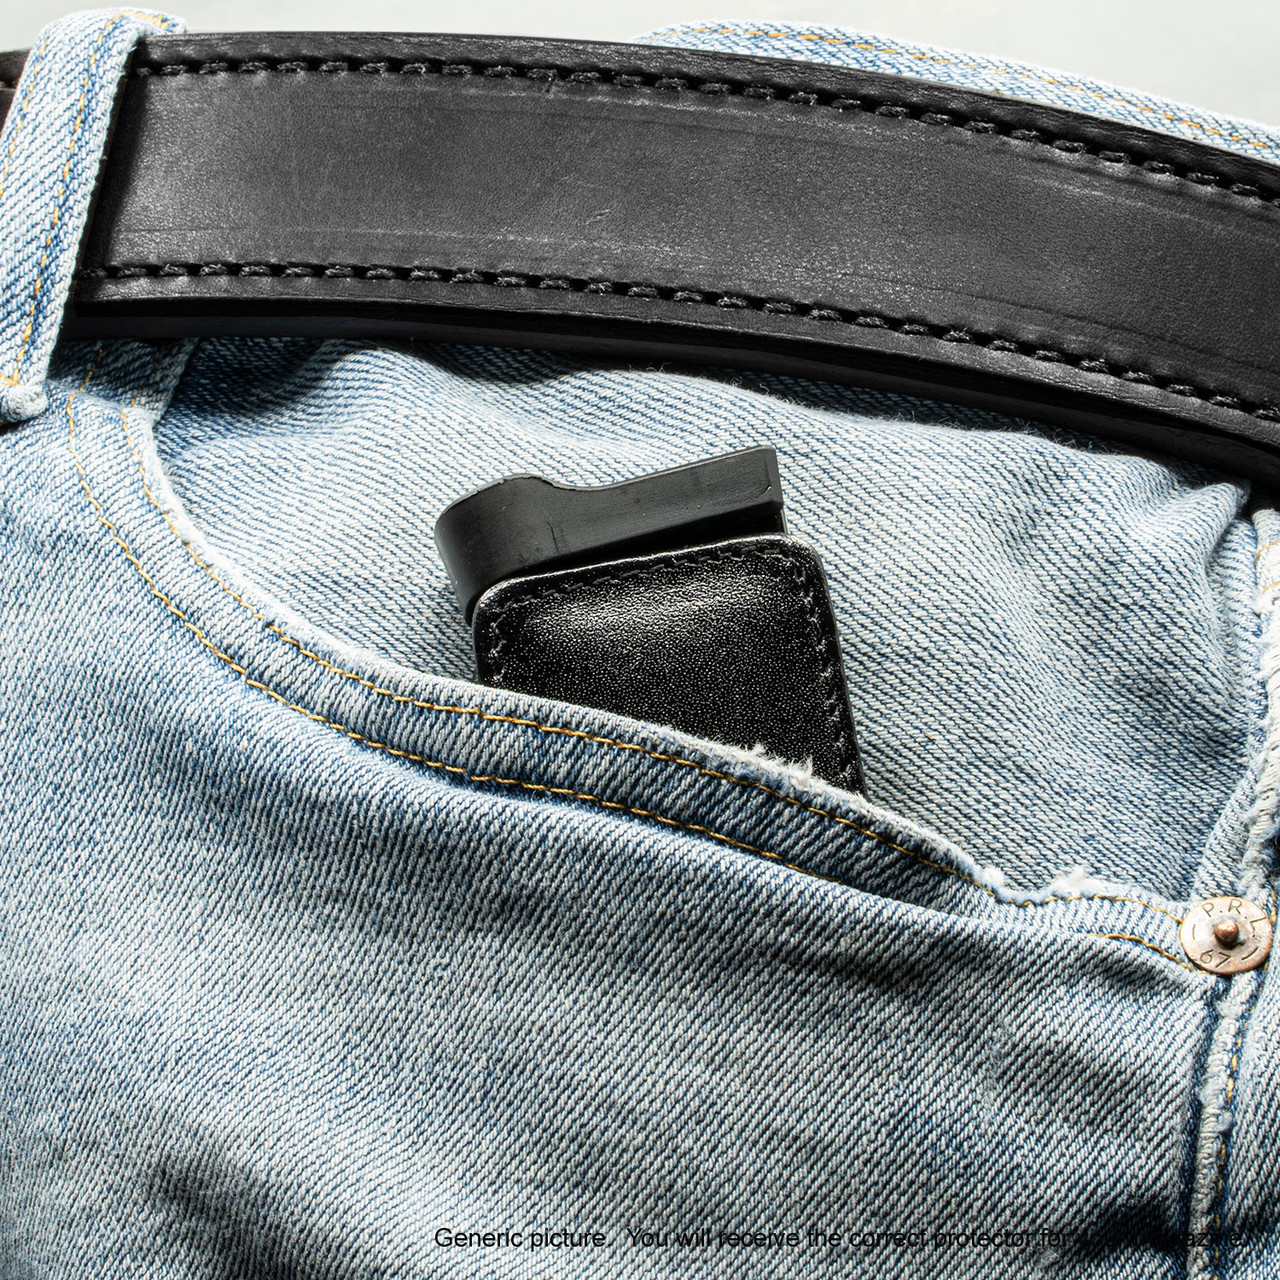 SCCY CPX-1 Black Leather Magazine Pocket Protector